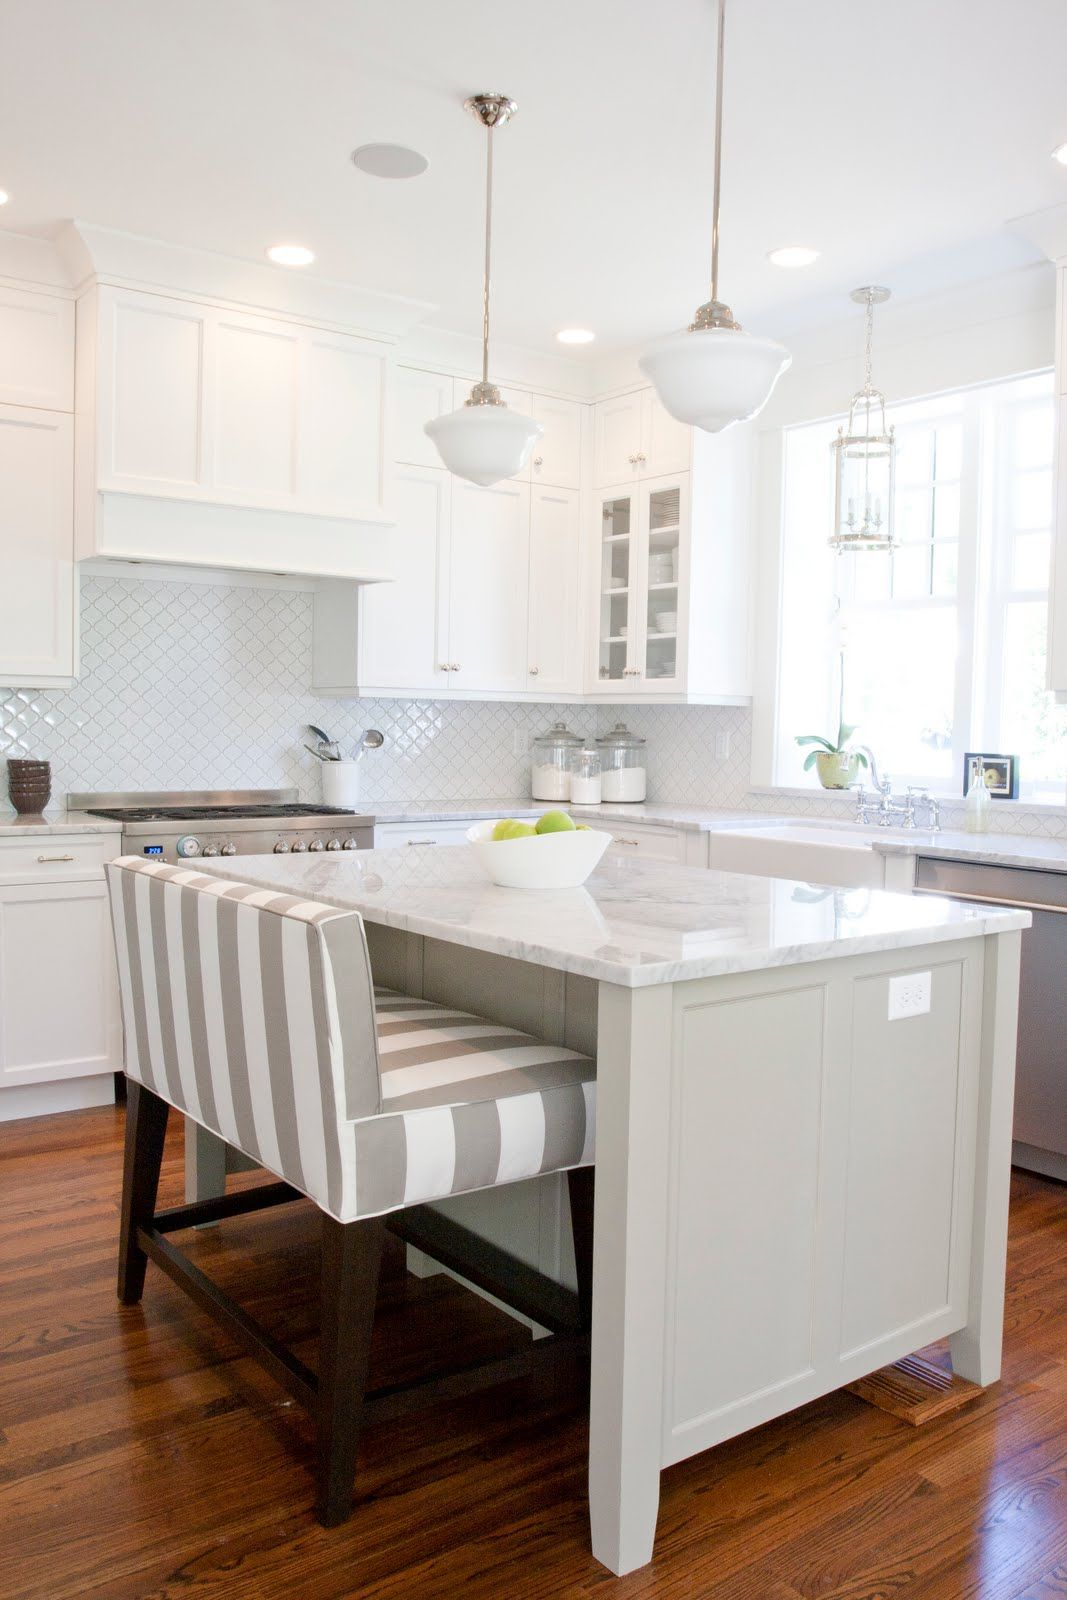 Appealing Bench Seating Kitchen Bar Bench Against Back Wall Media Room As Ater Kitchen Bar Bench Against Back Wall Media Room As Ater Kitchen Island Bench Booth Seating Kitchen Island kitchen Island Bench Seating